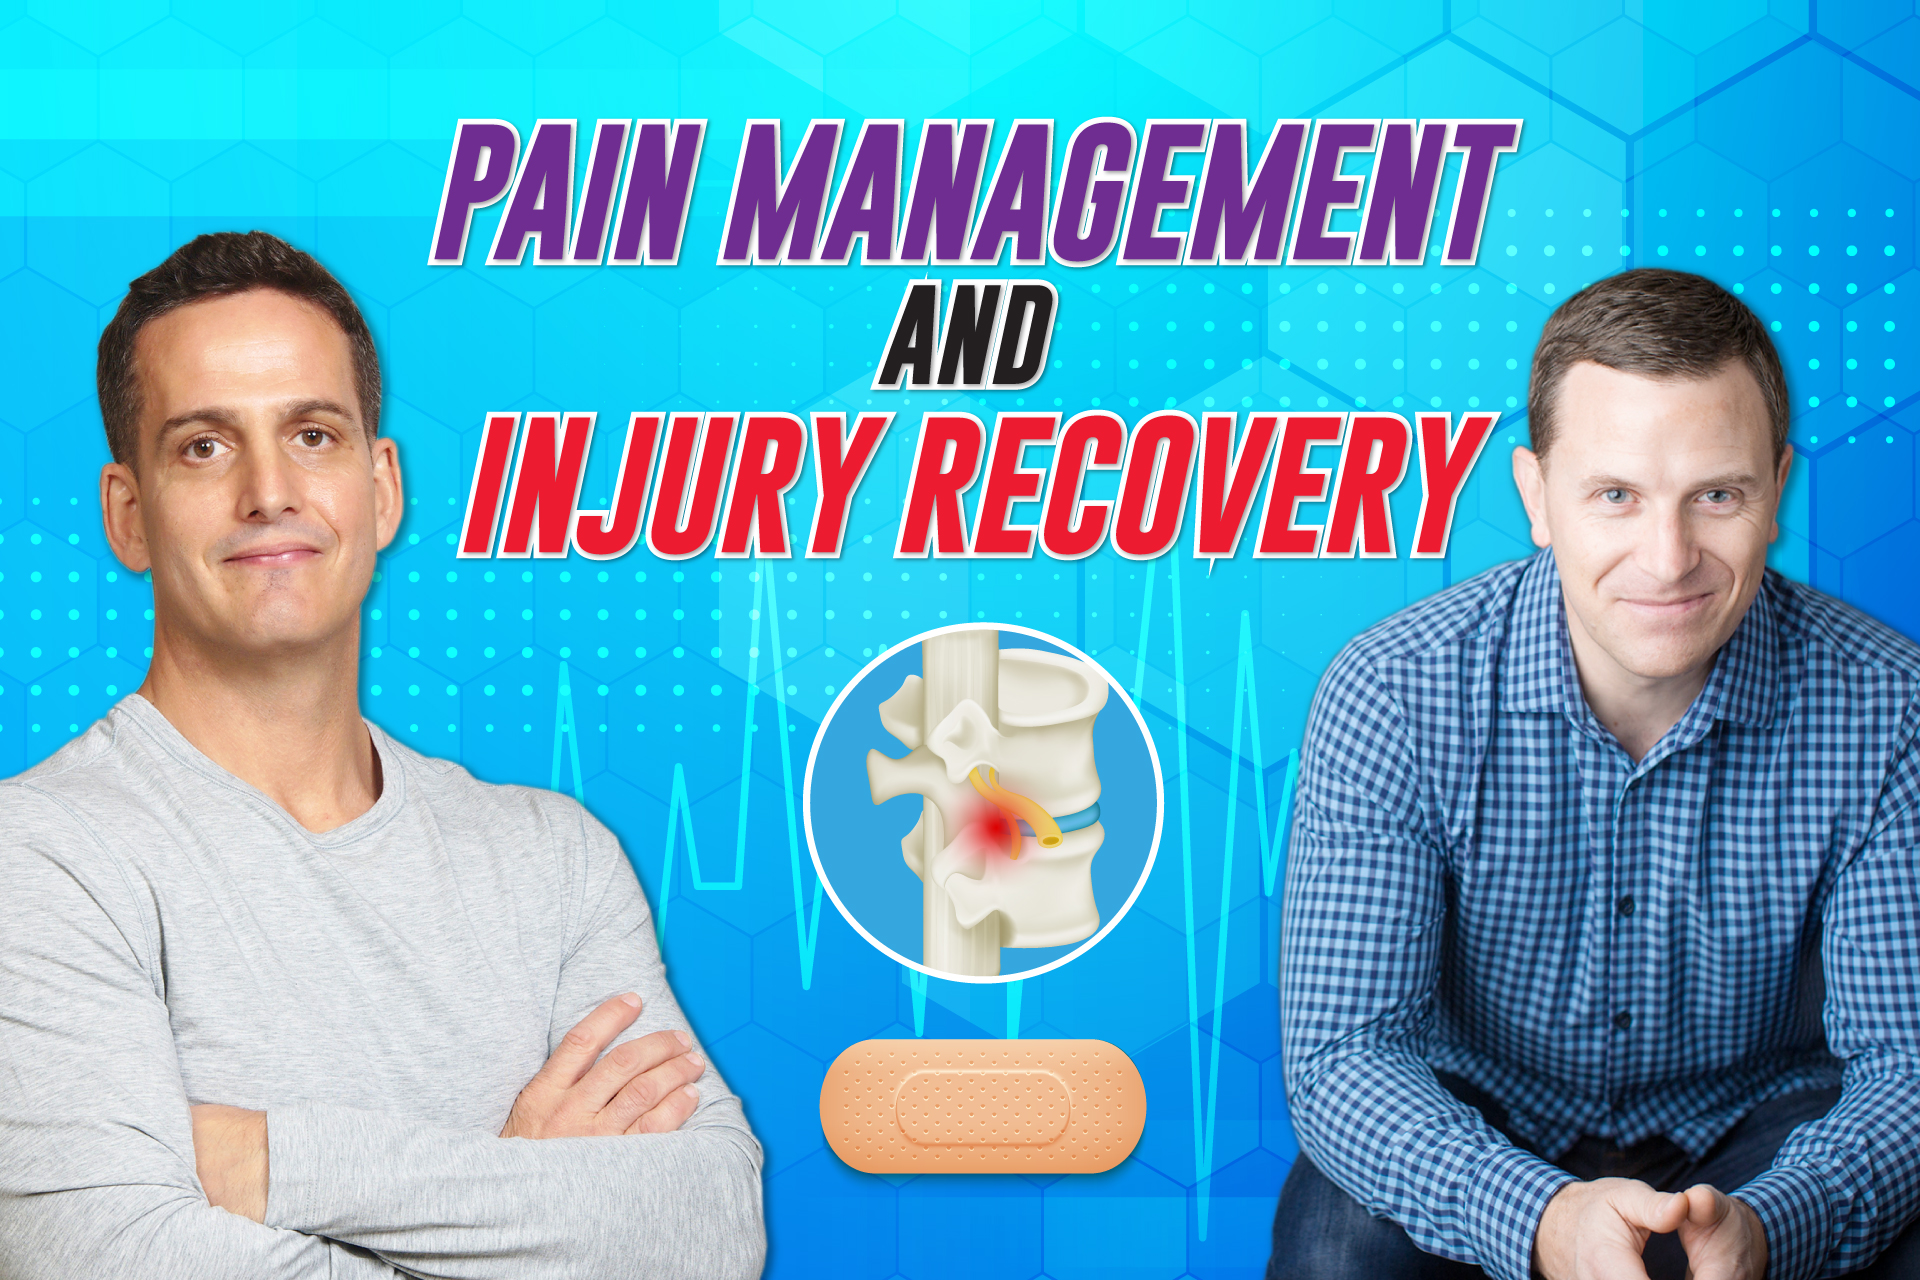 Pain Management and Injury Recovery